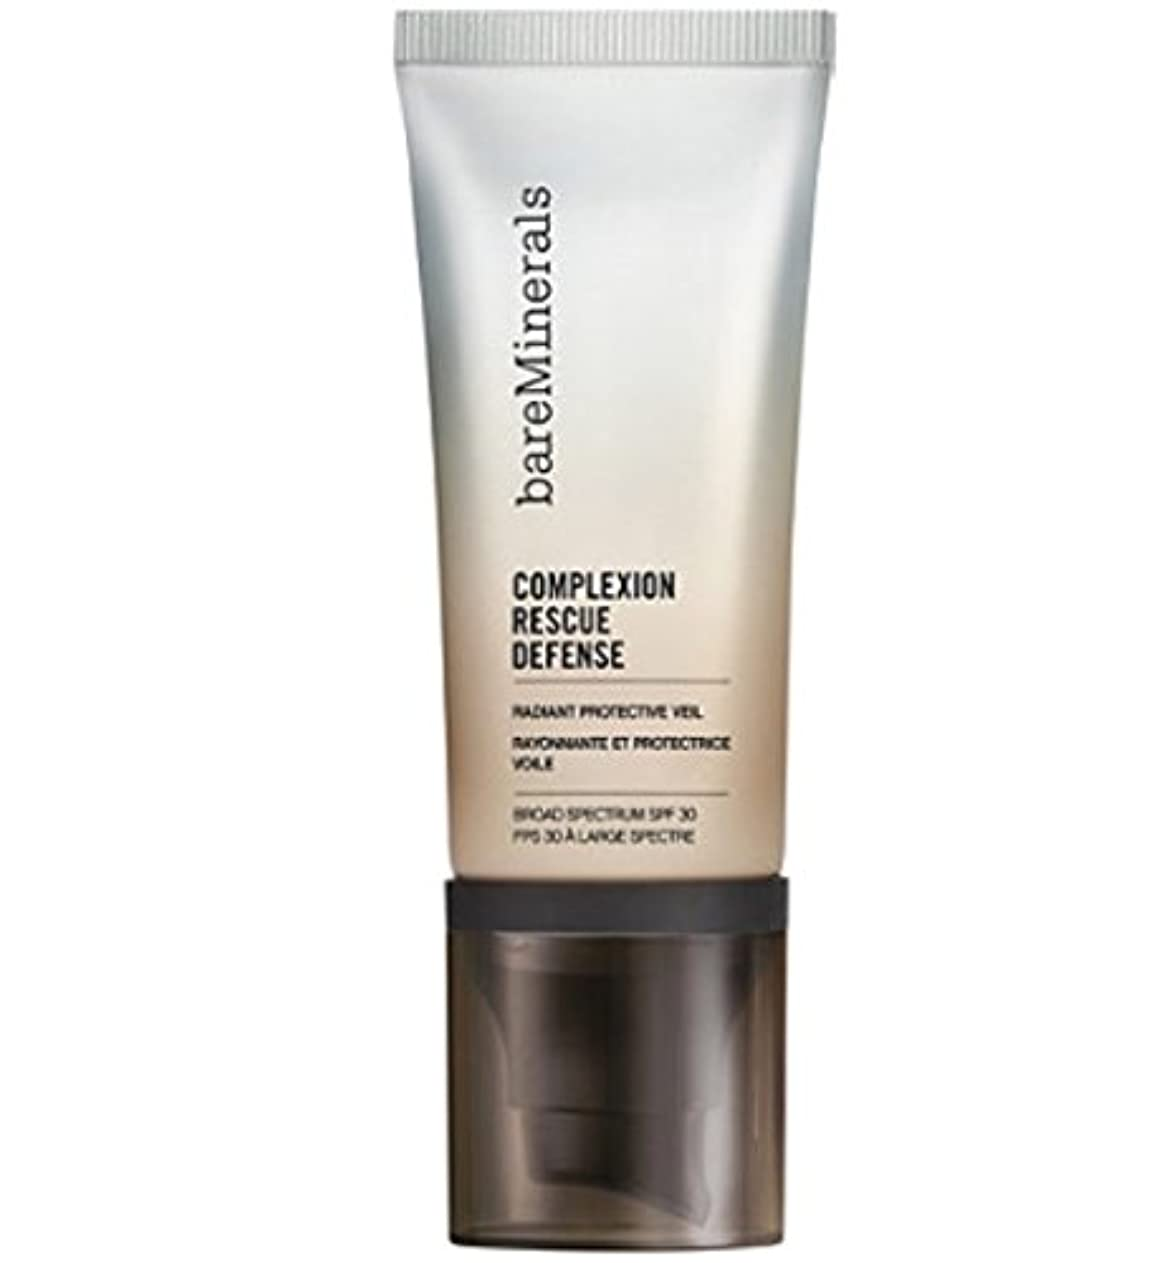 ベアミネラル Complexion Rescue Defense Radiant Protective Veil SPF 30 (Soft Radiance) 50ml/1.7oz並行輸入品